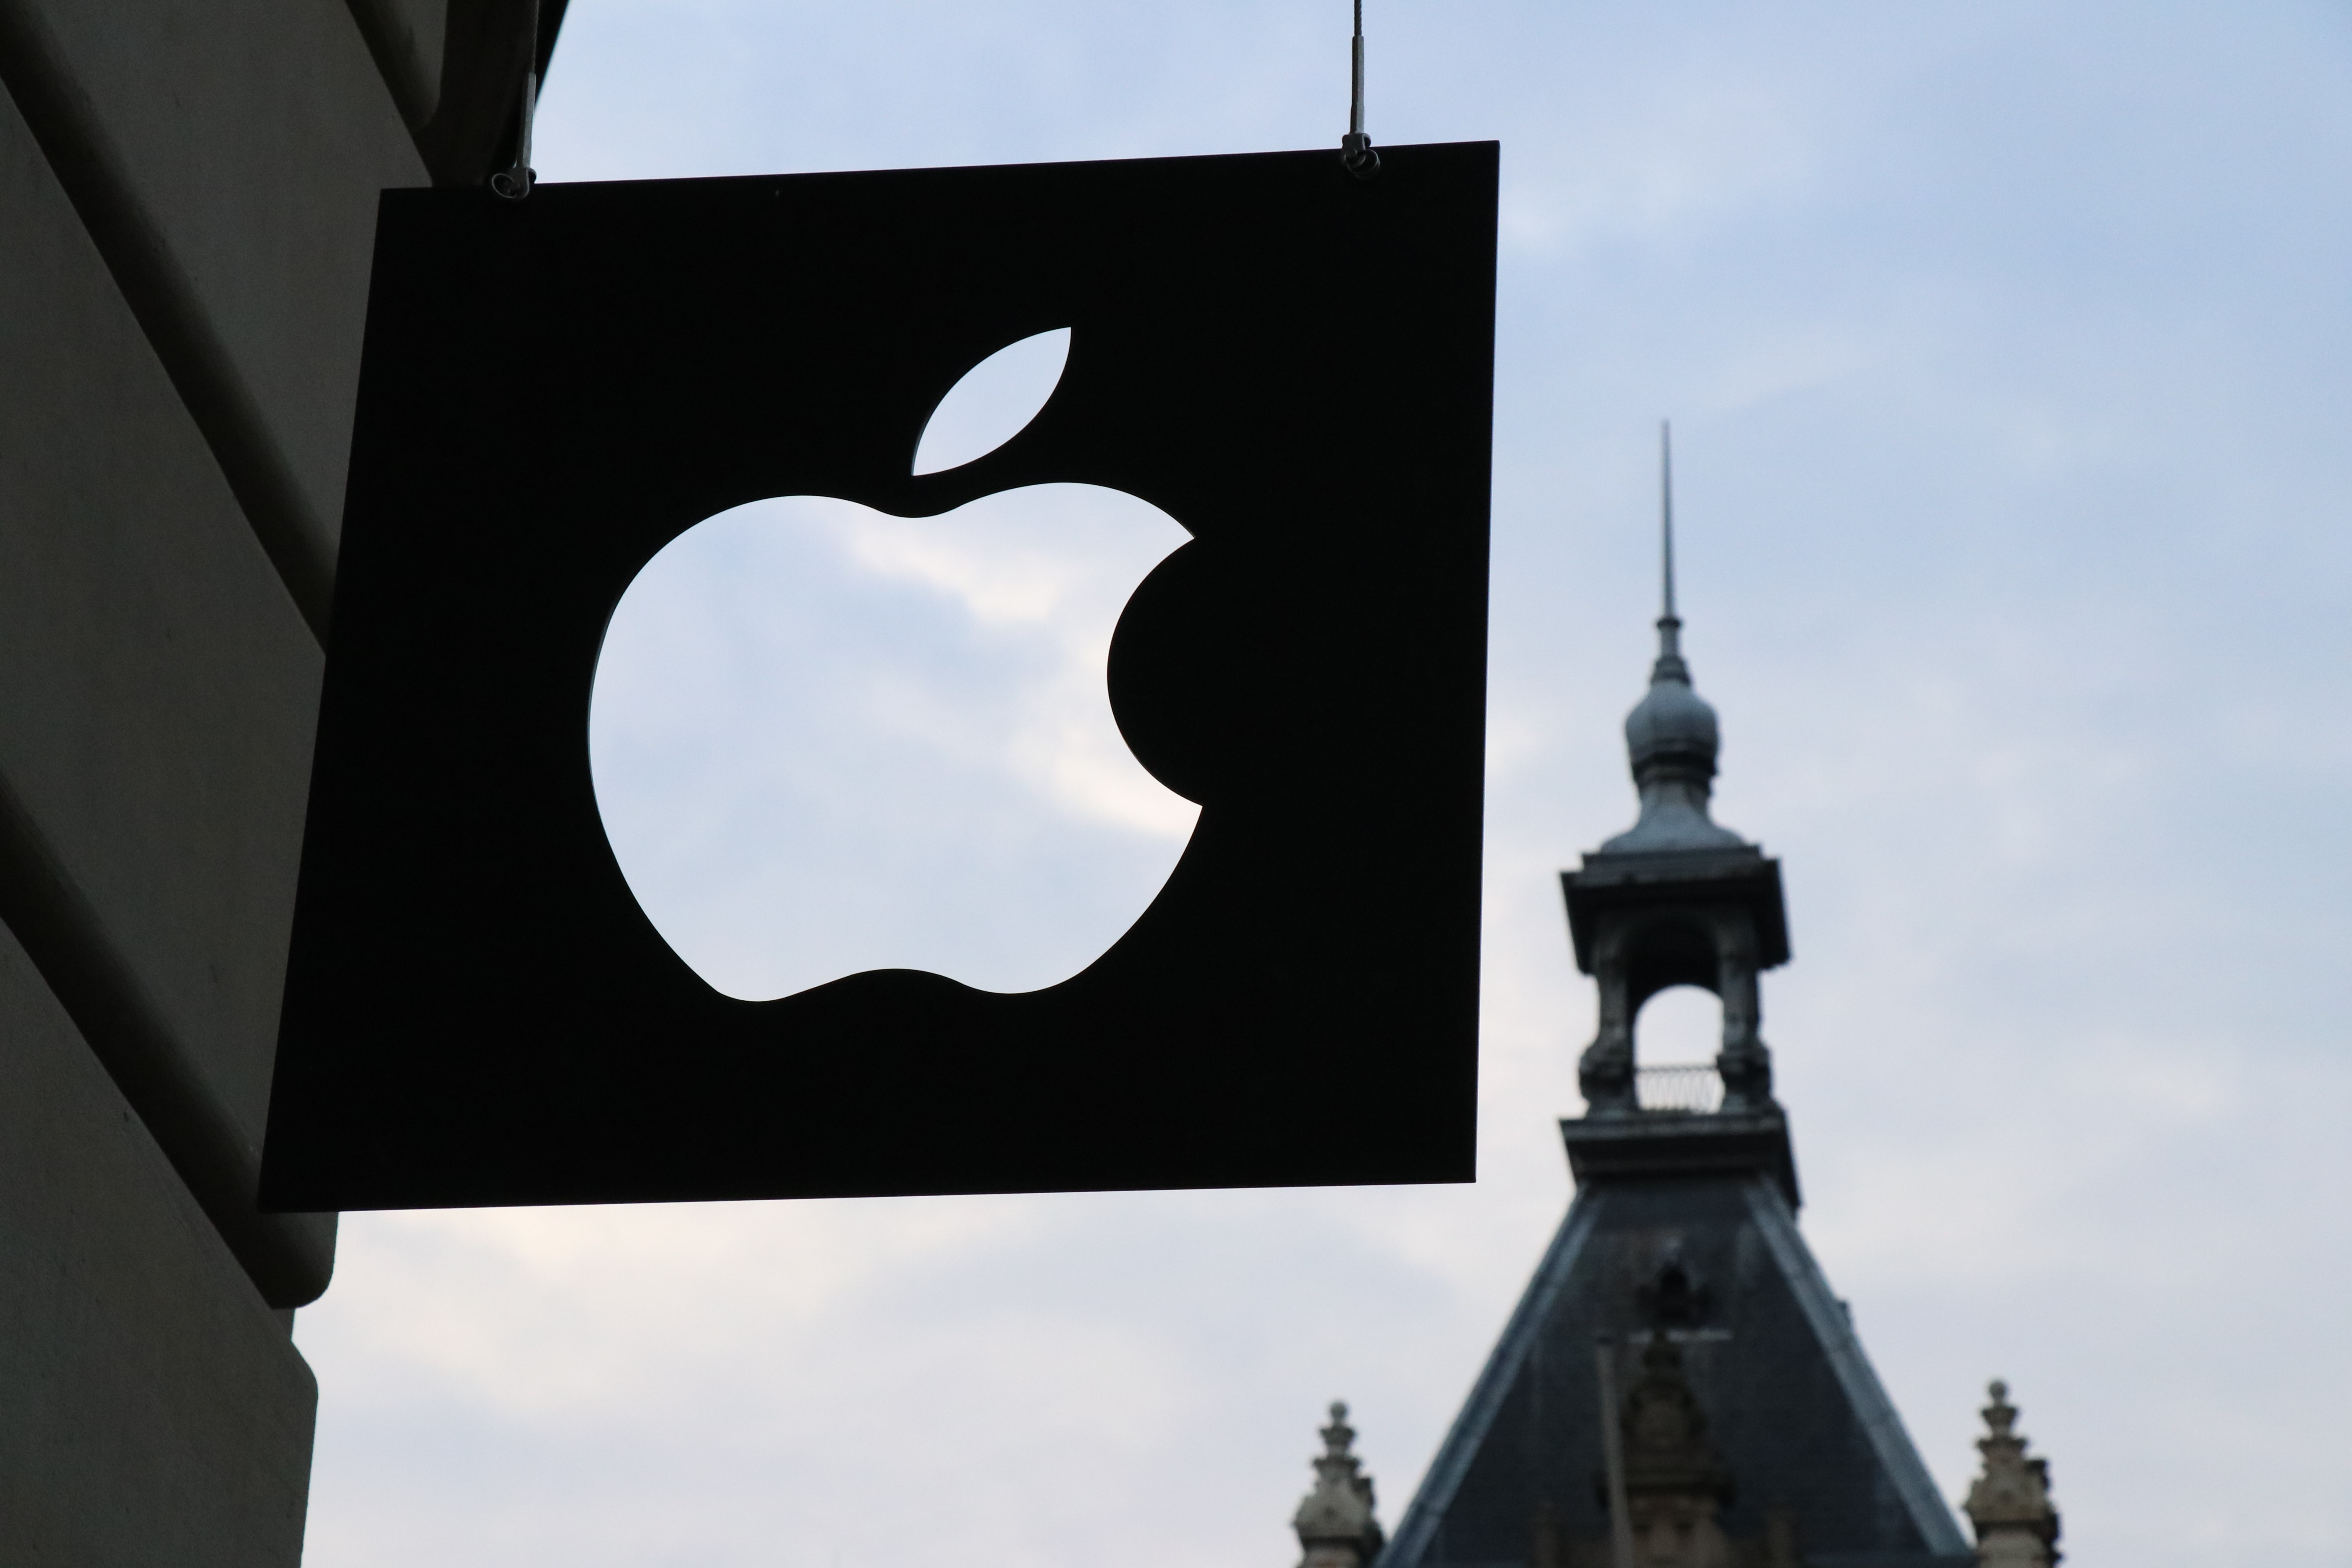 Apple Becomes First Company to Pass $2 Trillion Valuation